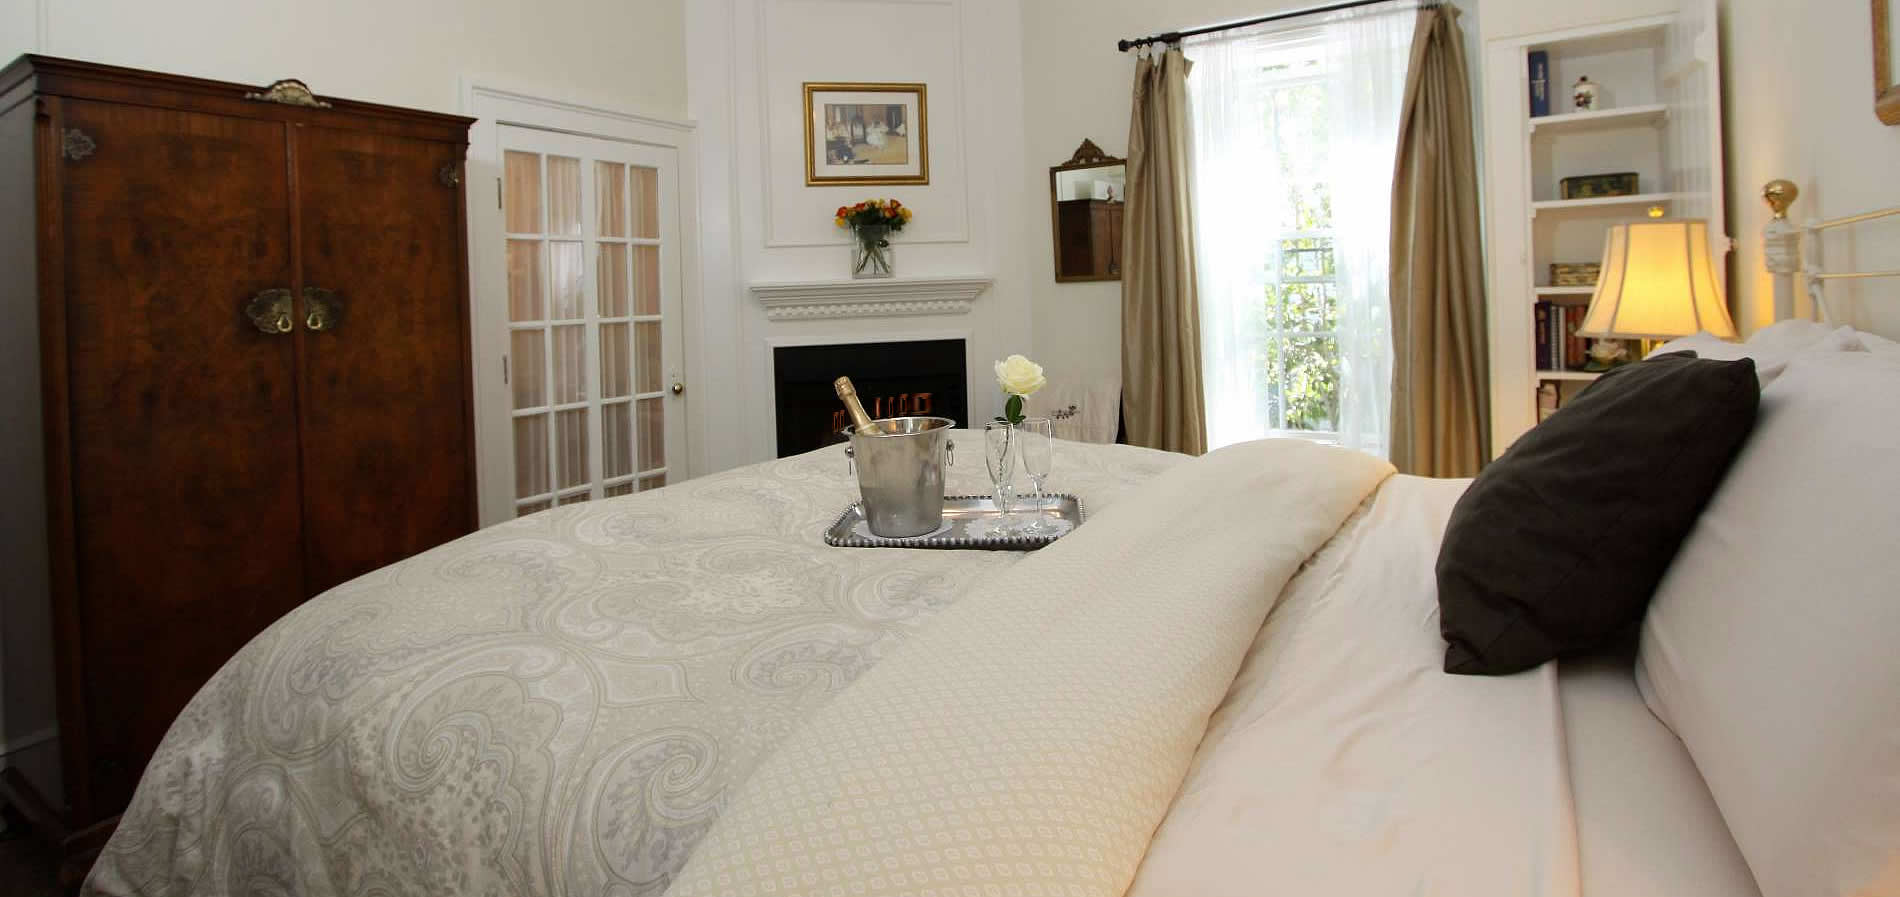 cambria bed and breakfast inn with romantic guest rooms with bed and fireplace